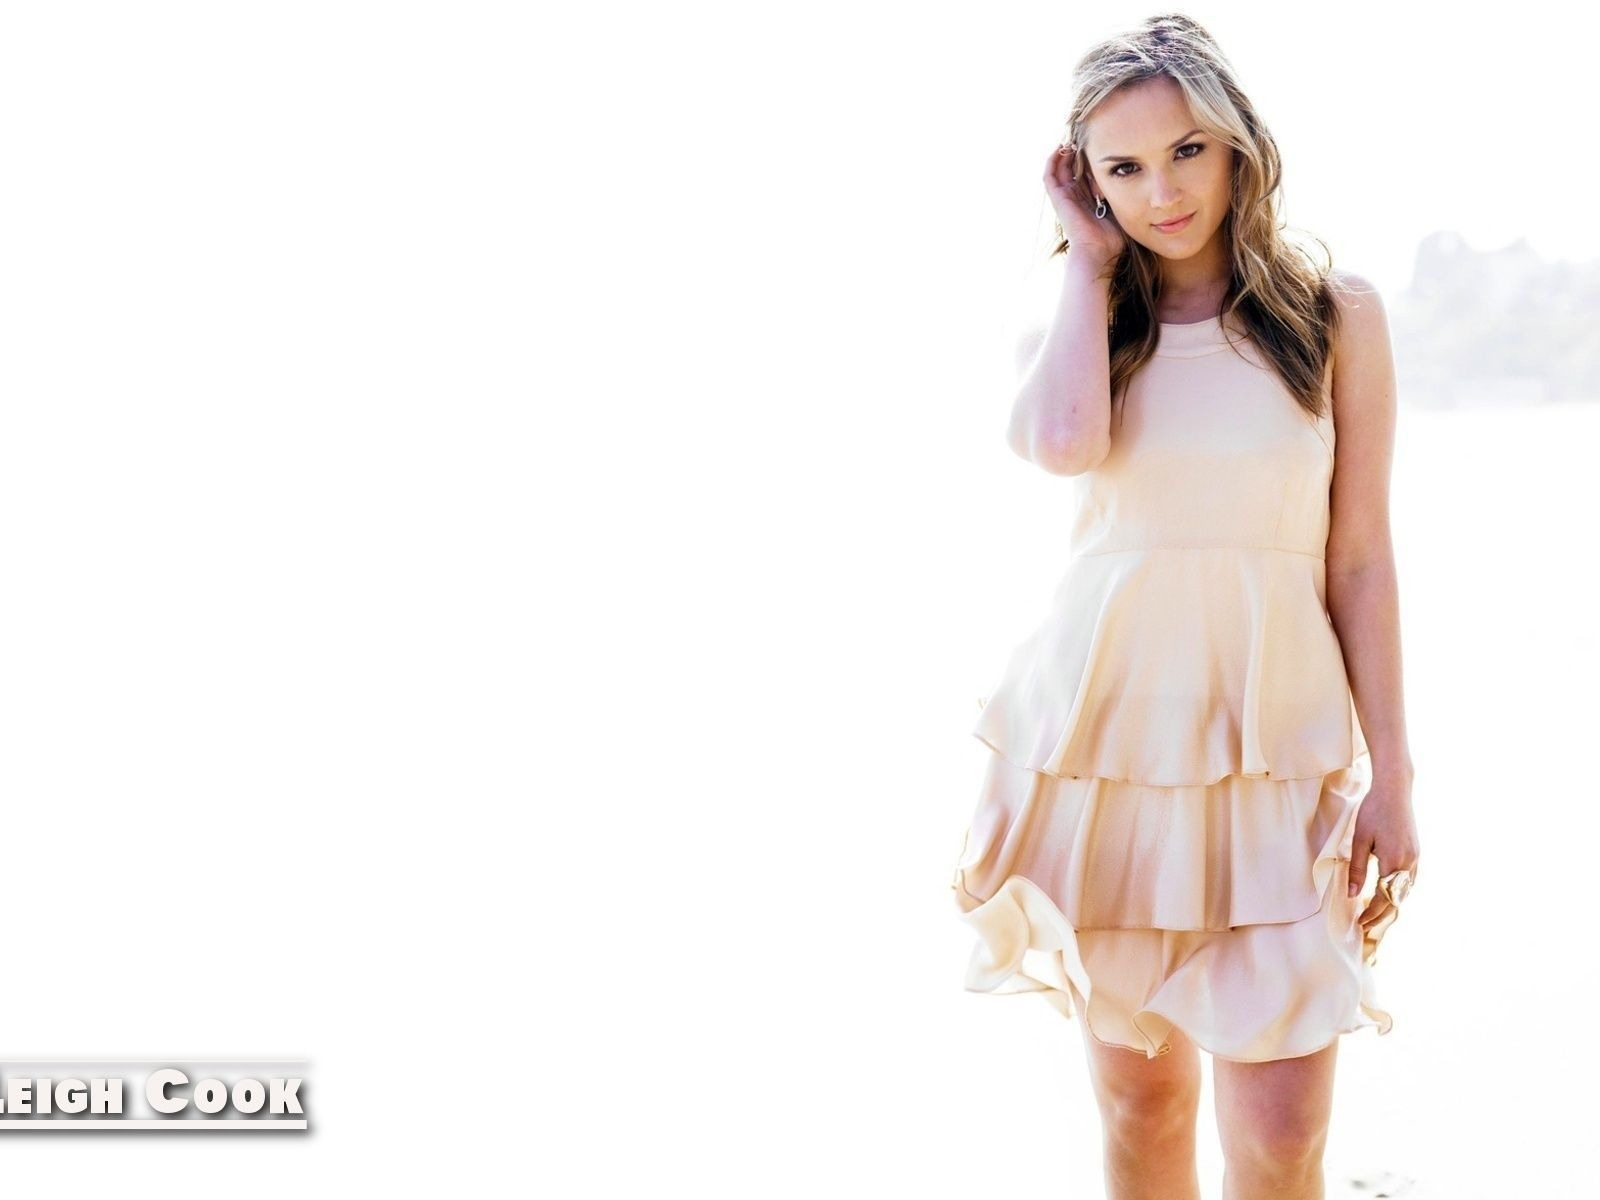 Rachael Leigh Cook #014 - 1600x1200 Wallpapers Pictures Photos Images